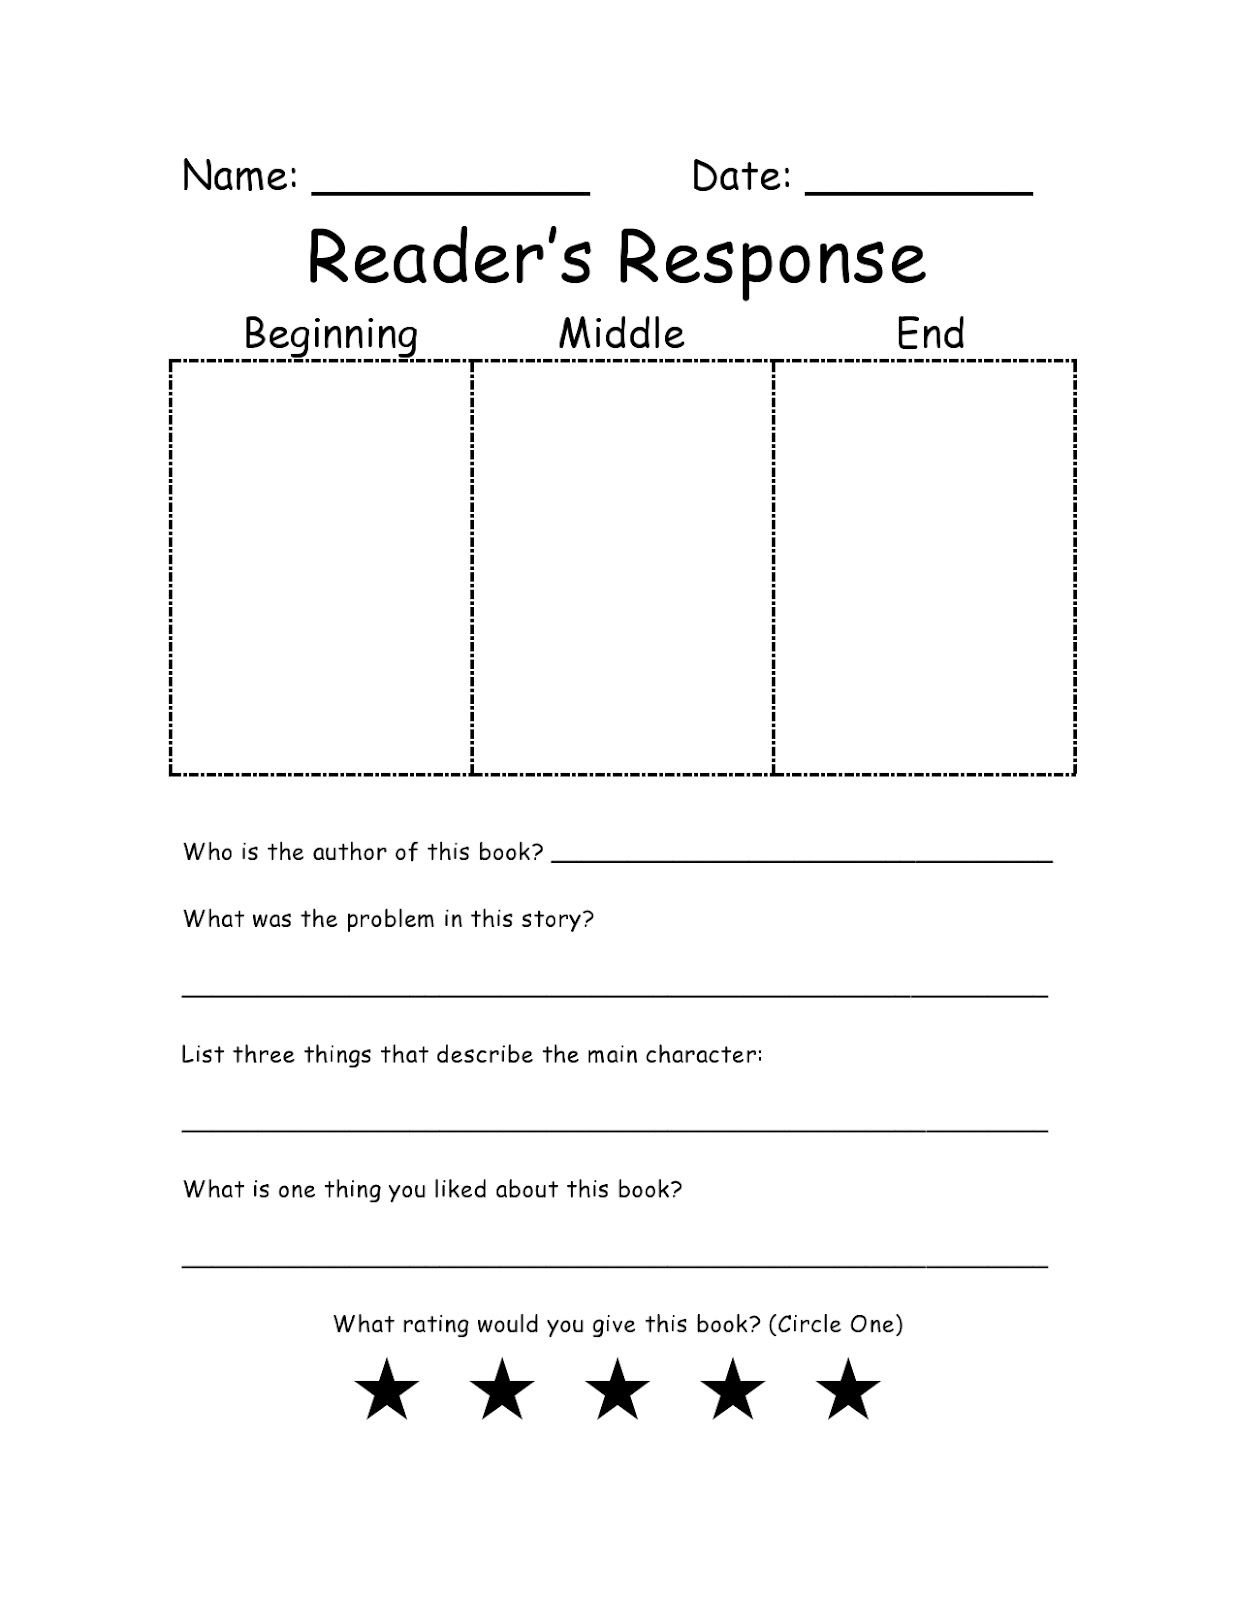 small resolution of Beginning Middle And End Graphic Organizer Worksheet Examples   Reading  response